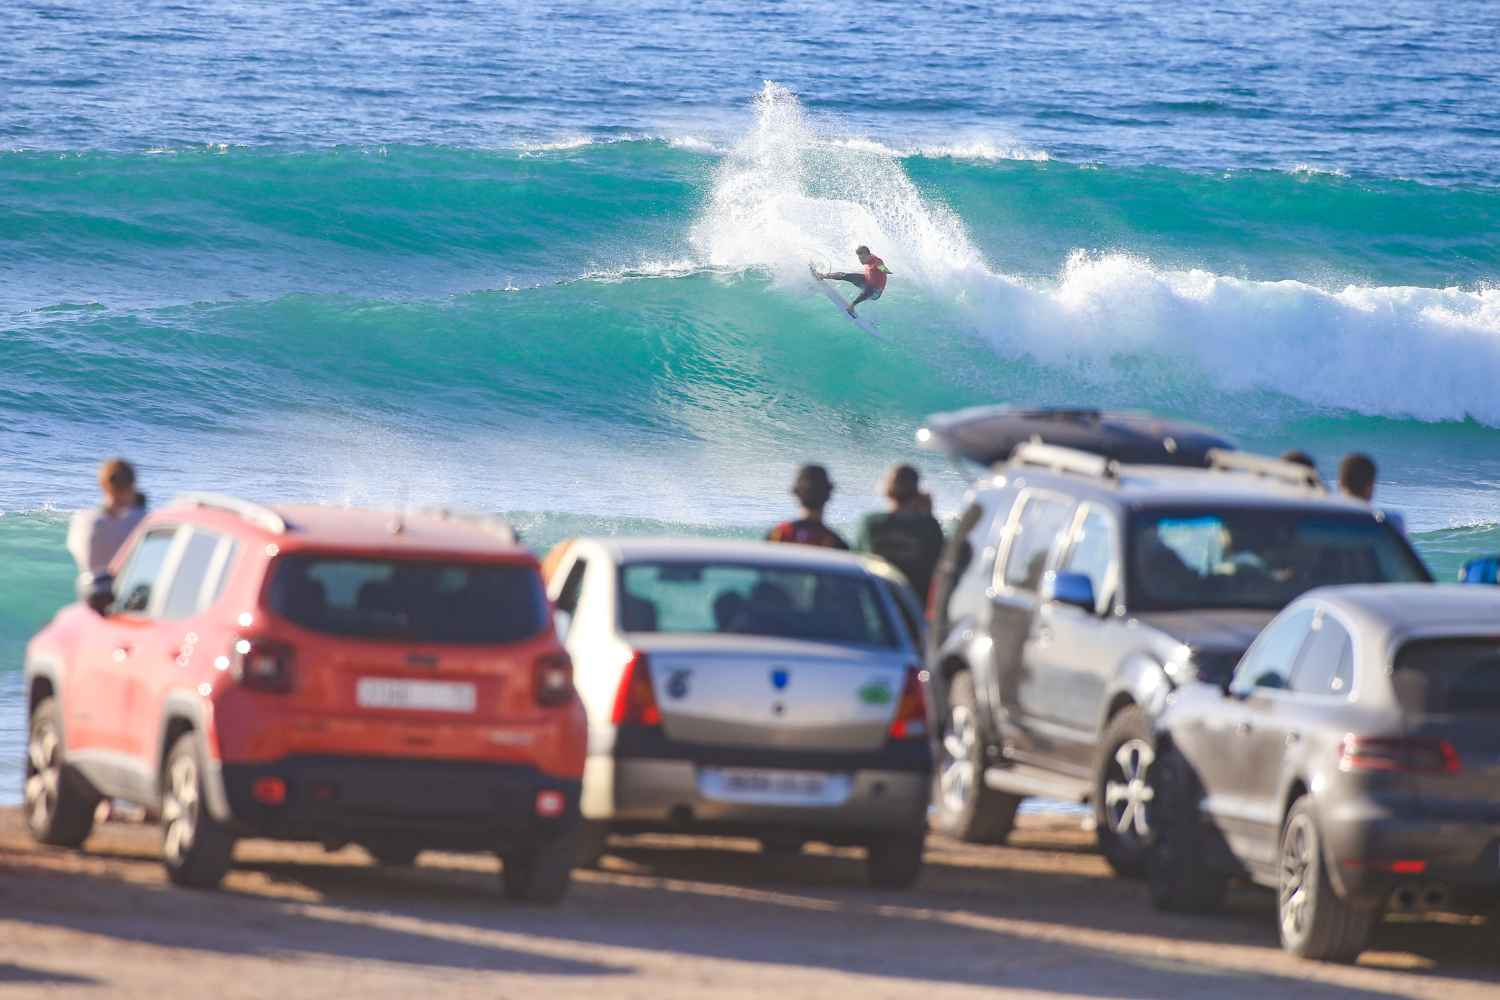 Epic Surfing in Morocco Pro Taghazout Bay Highlights